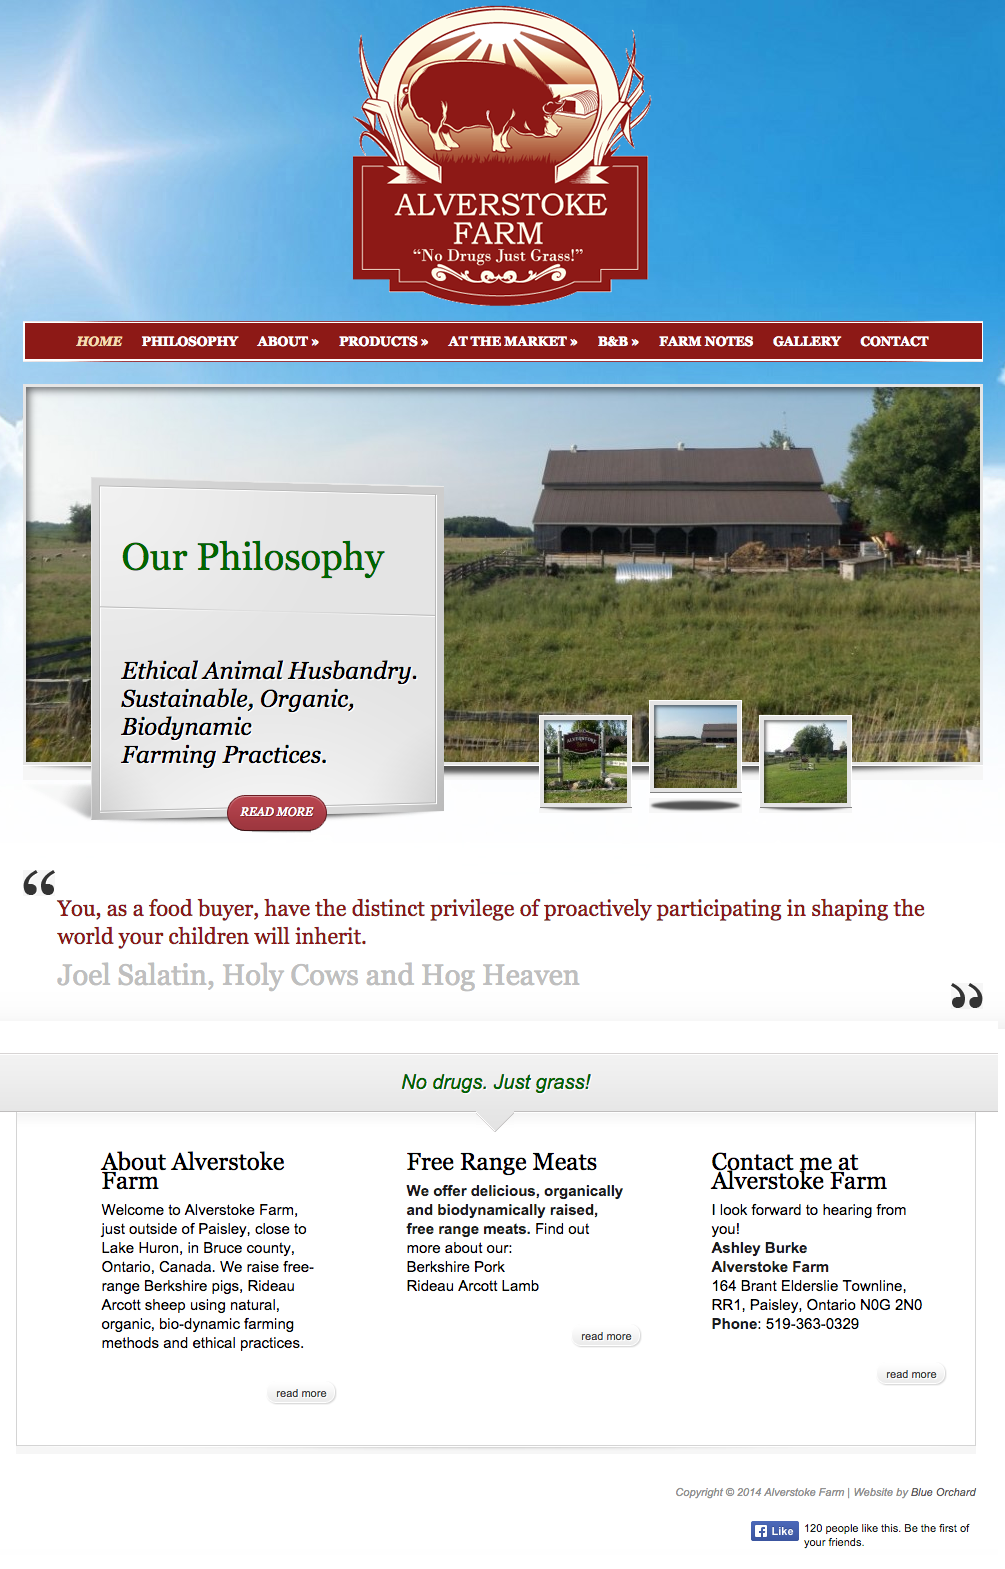 AlverstokeFarm.ca - Homepage - Full Screen View